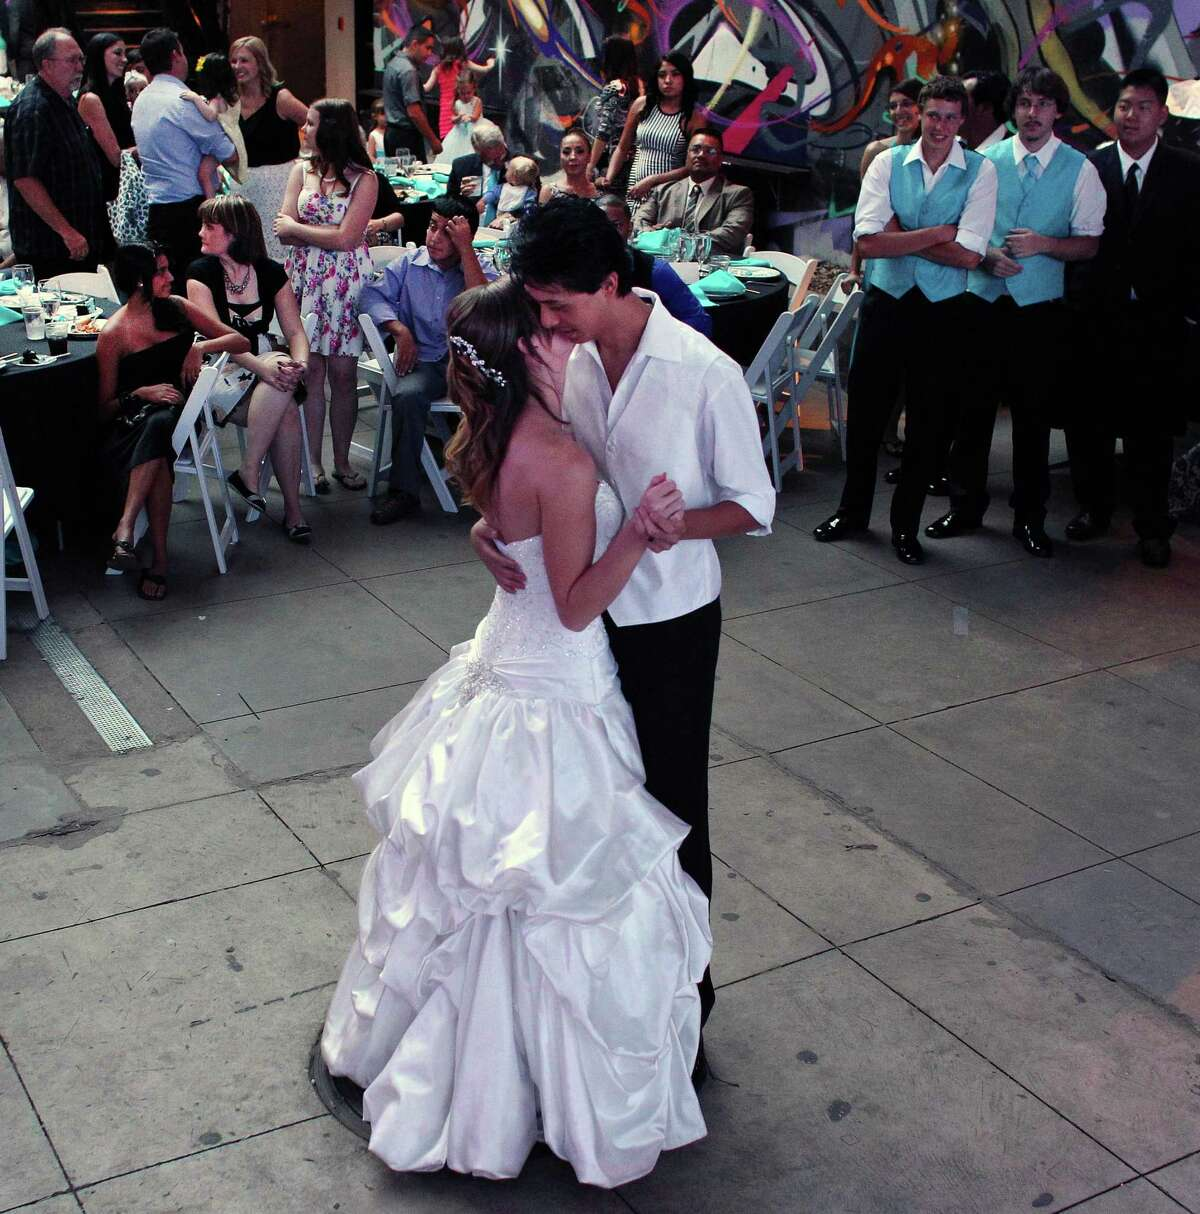 Aurora shooting survivors - and now newlyweds - Kirstin and Eugene Han perform the ceremonial first dance during their wedding reception, in Denver, Saturday July 20, 2013. One year to the day since Eugene was shot while trying to protect his longtime girlfriend Kirstin - then Kirstin Davis - from harm during a shooting rampage in an Aurora theater, the two have become man and wife.